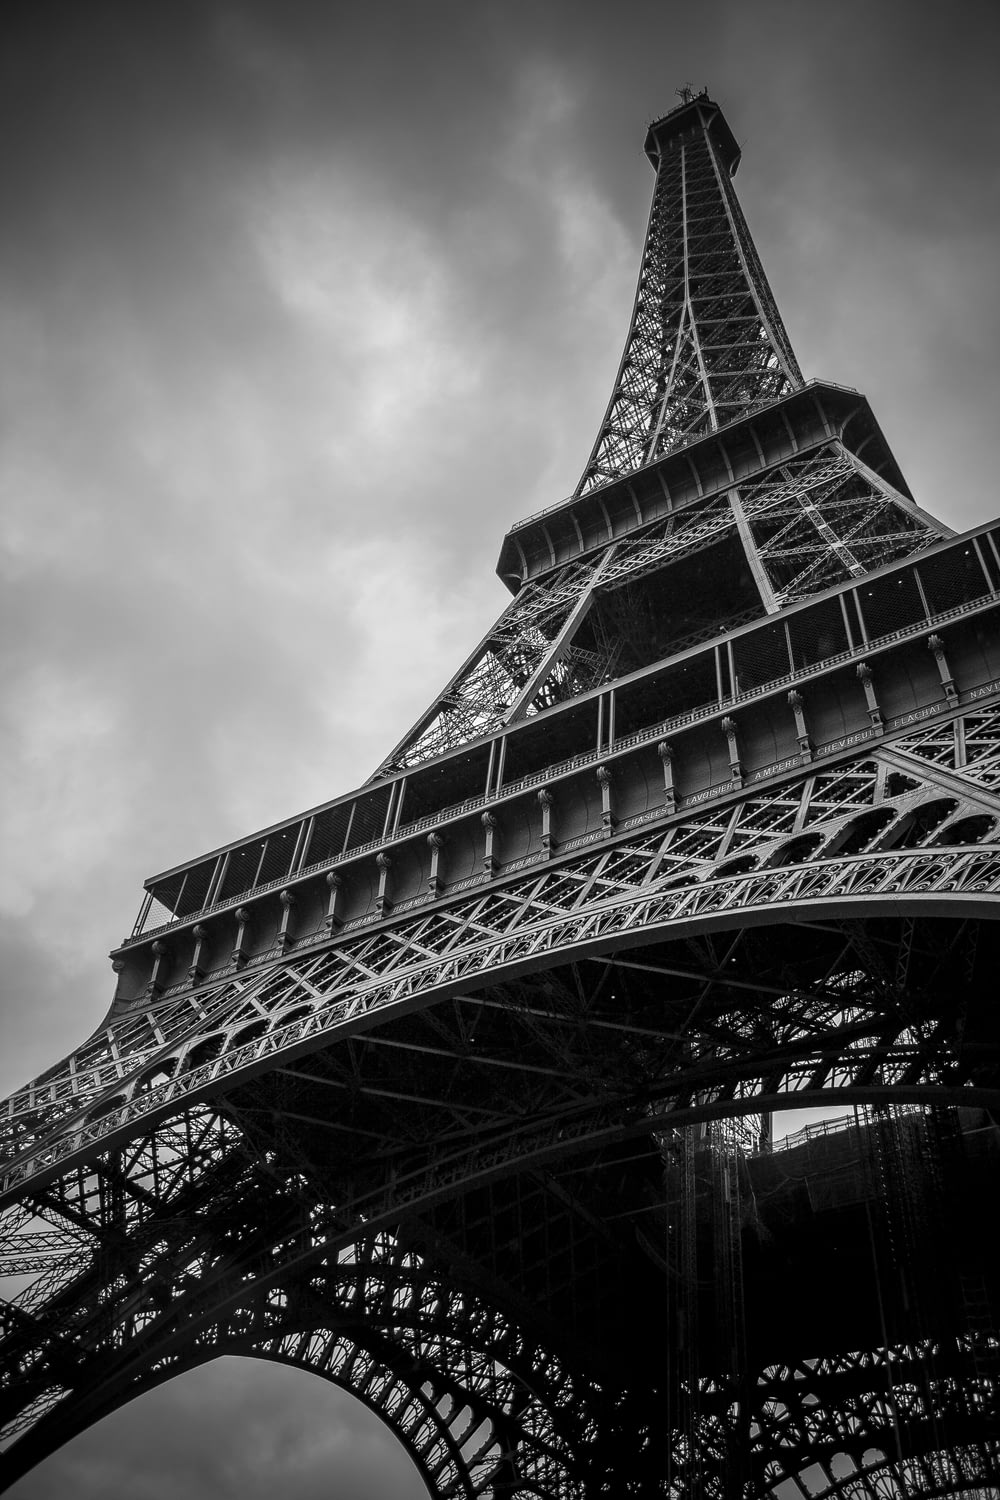 Eiffel Tower, Paris, France grayscale photography